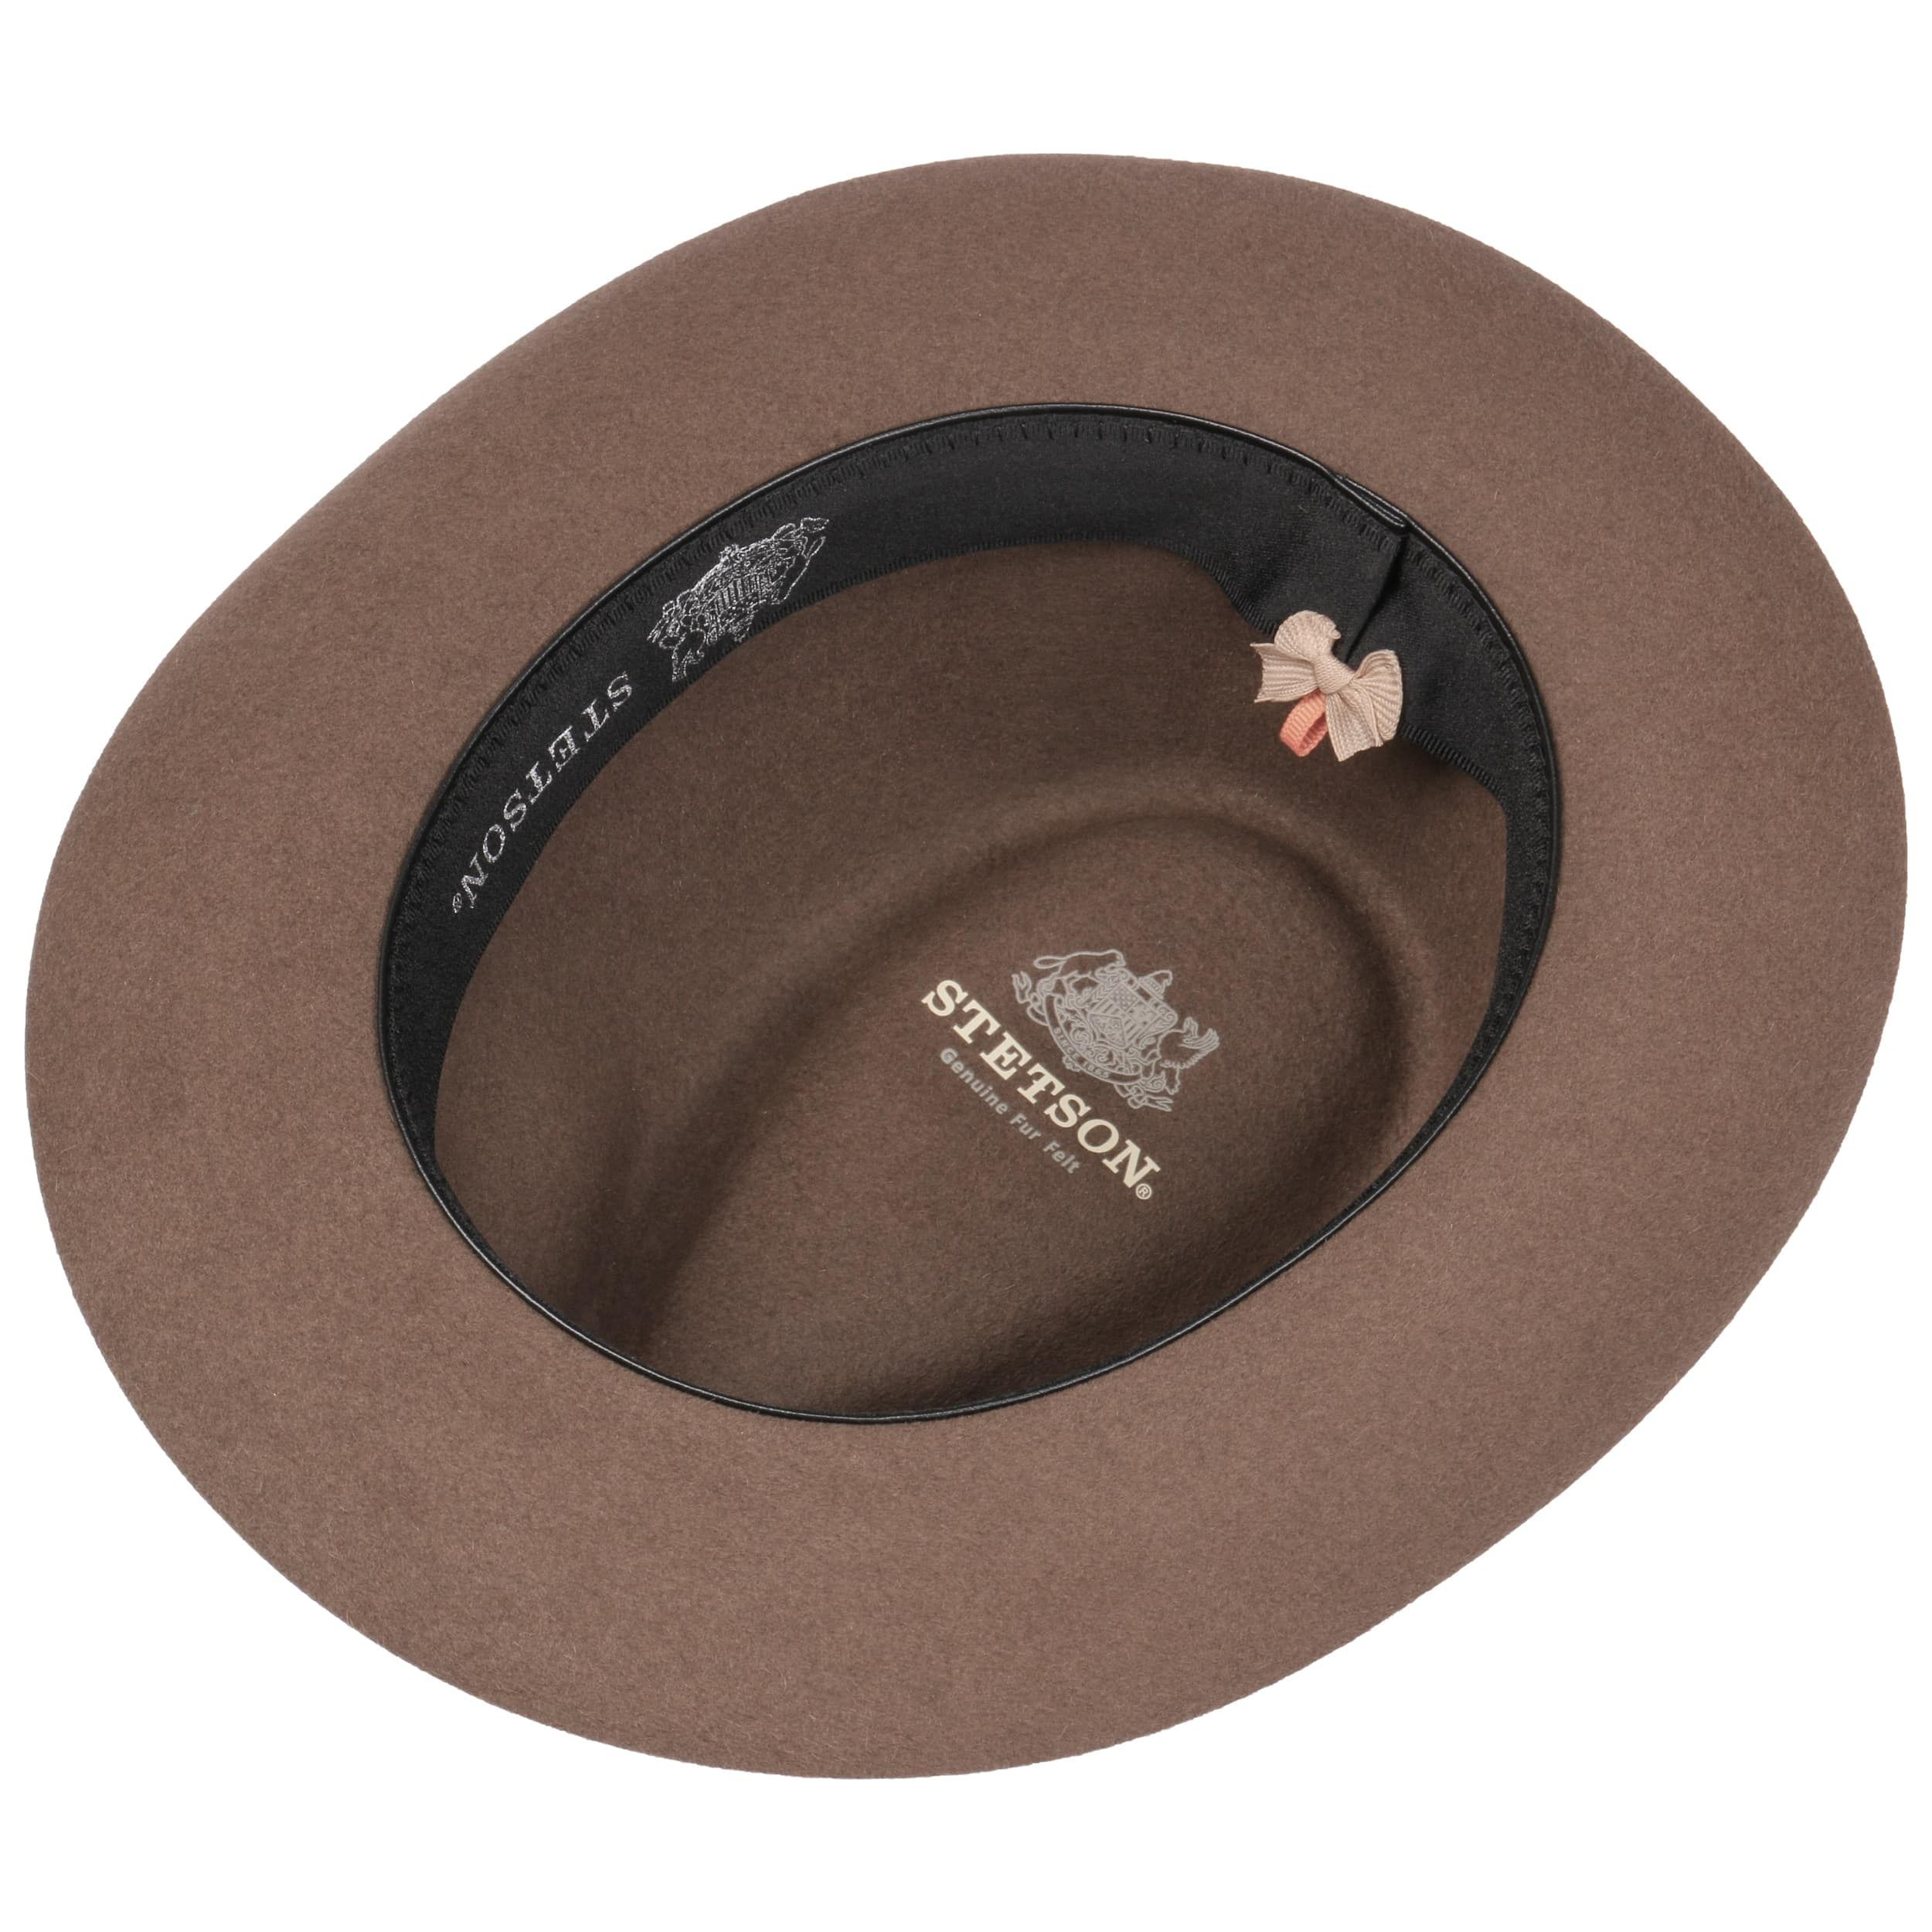 Verdale Fedora Fur Felt Hat light brown